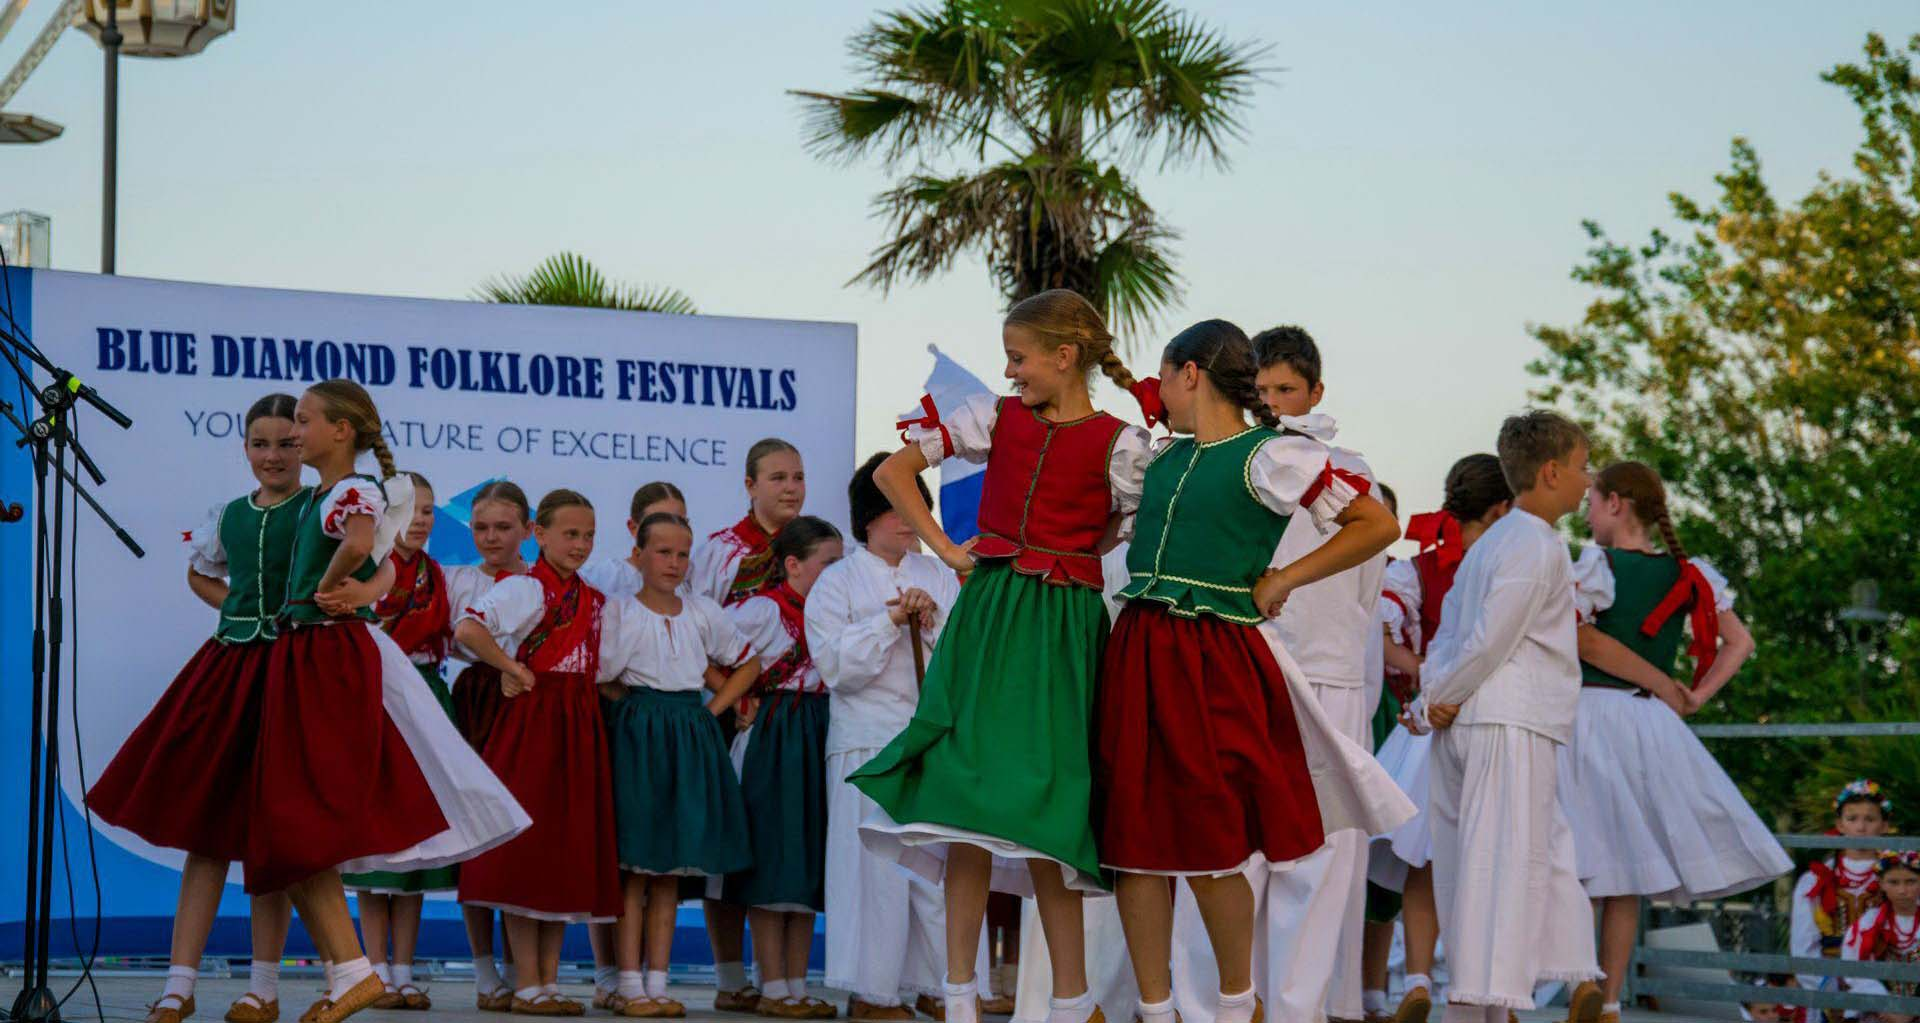 Folkore festival in Sorrento, Italy - Folklore festivals Blue Diamond